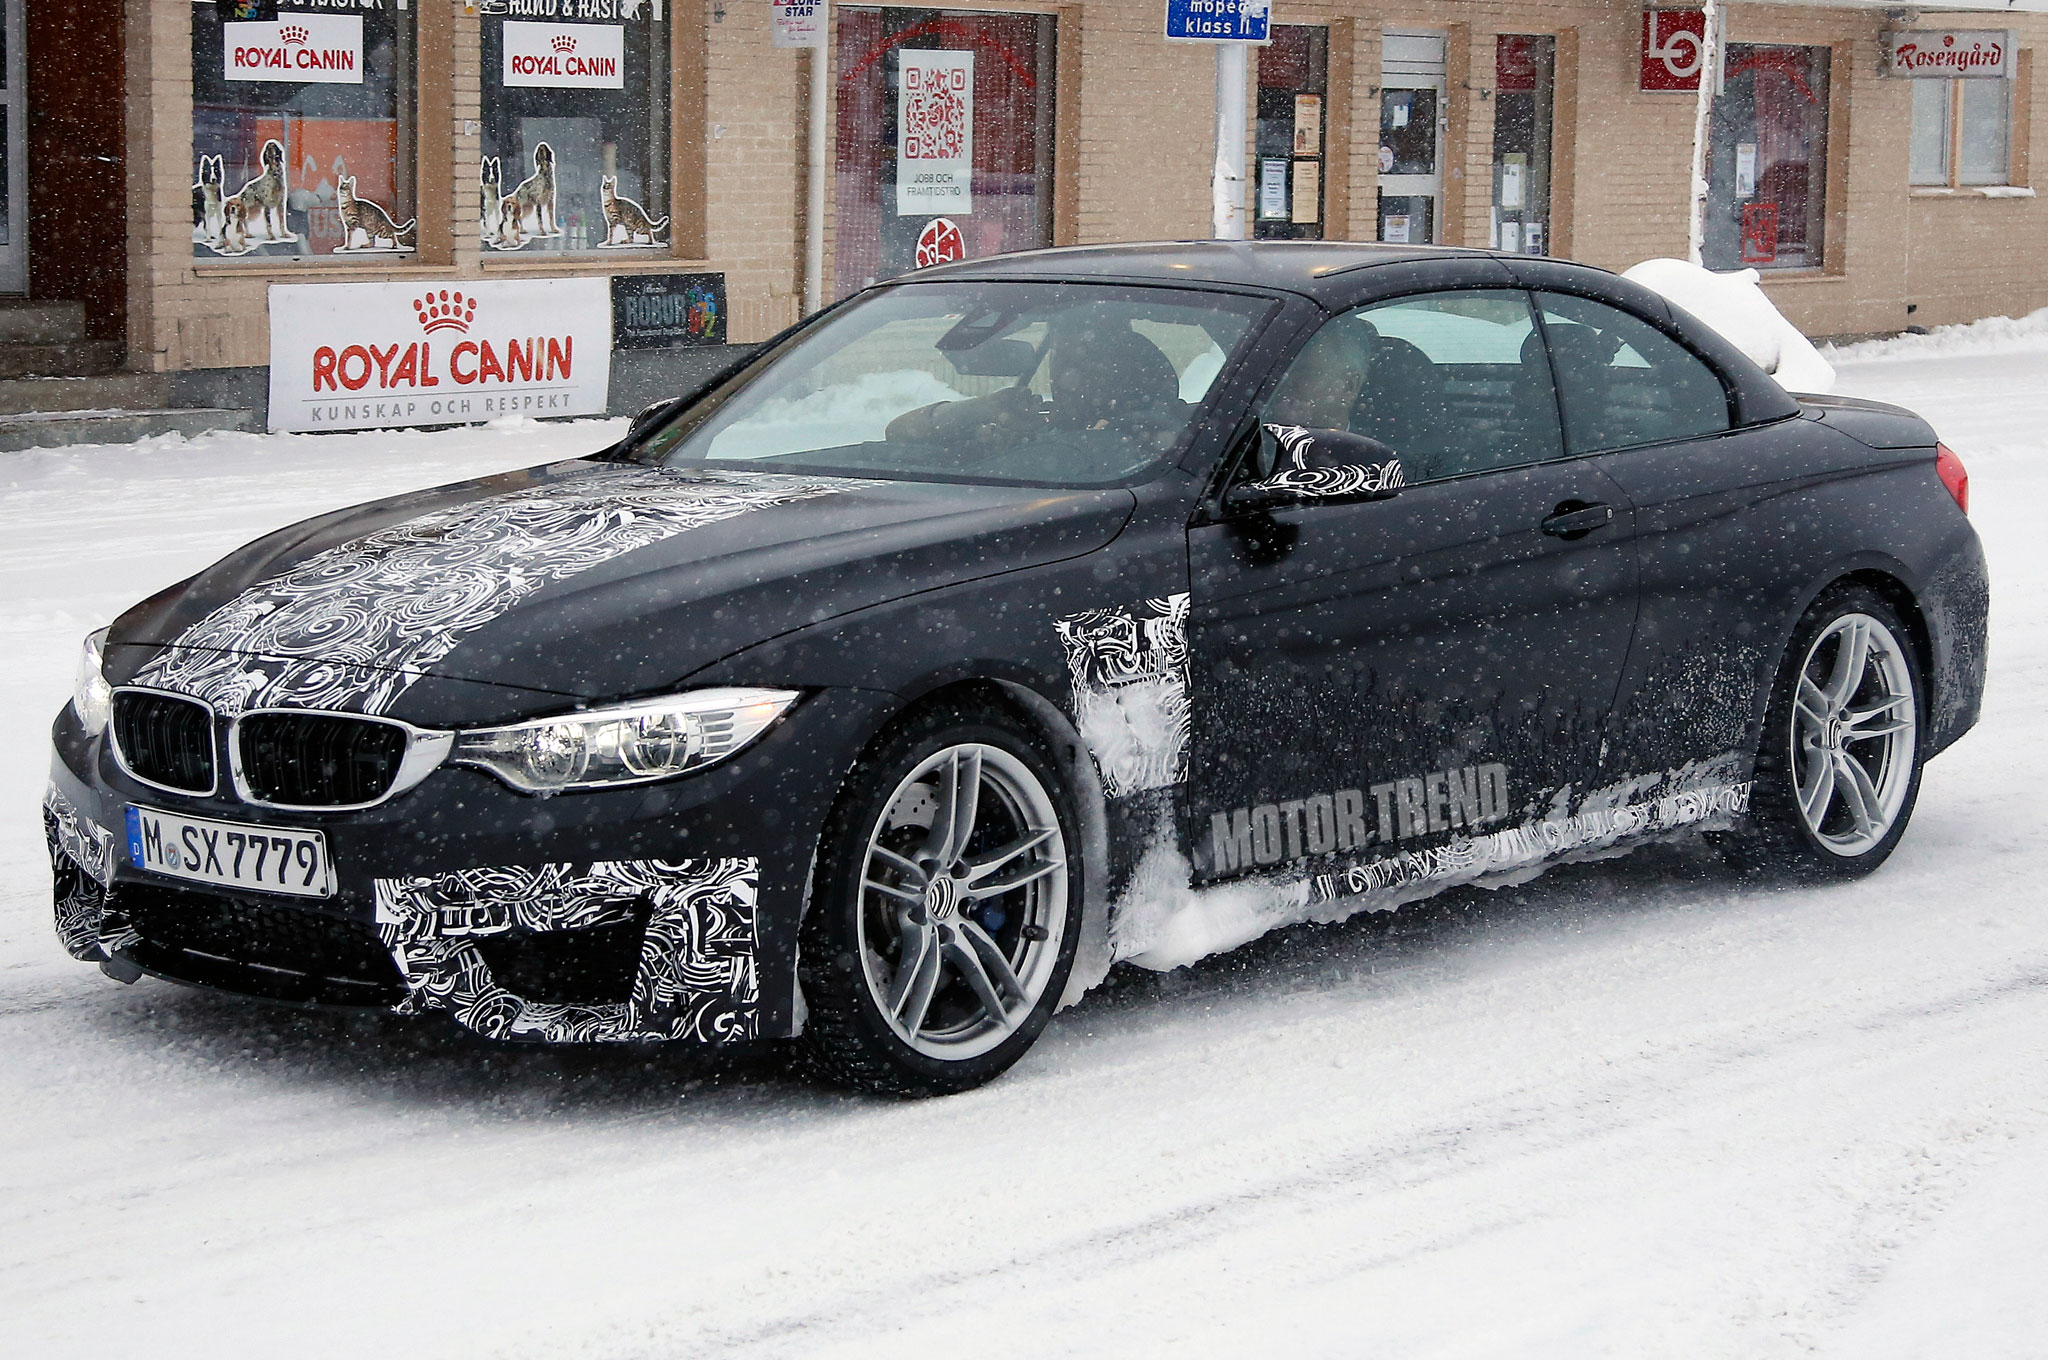 BMW M4 Convertible Spied Nearly Naked in Snowy Weather